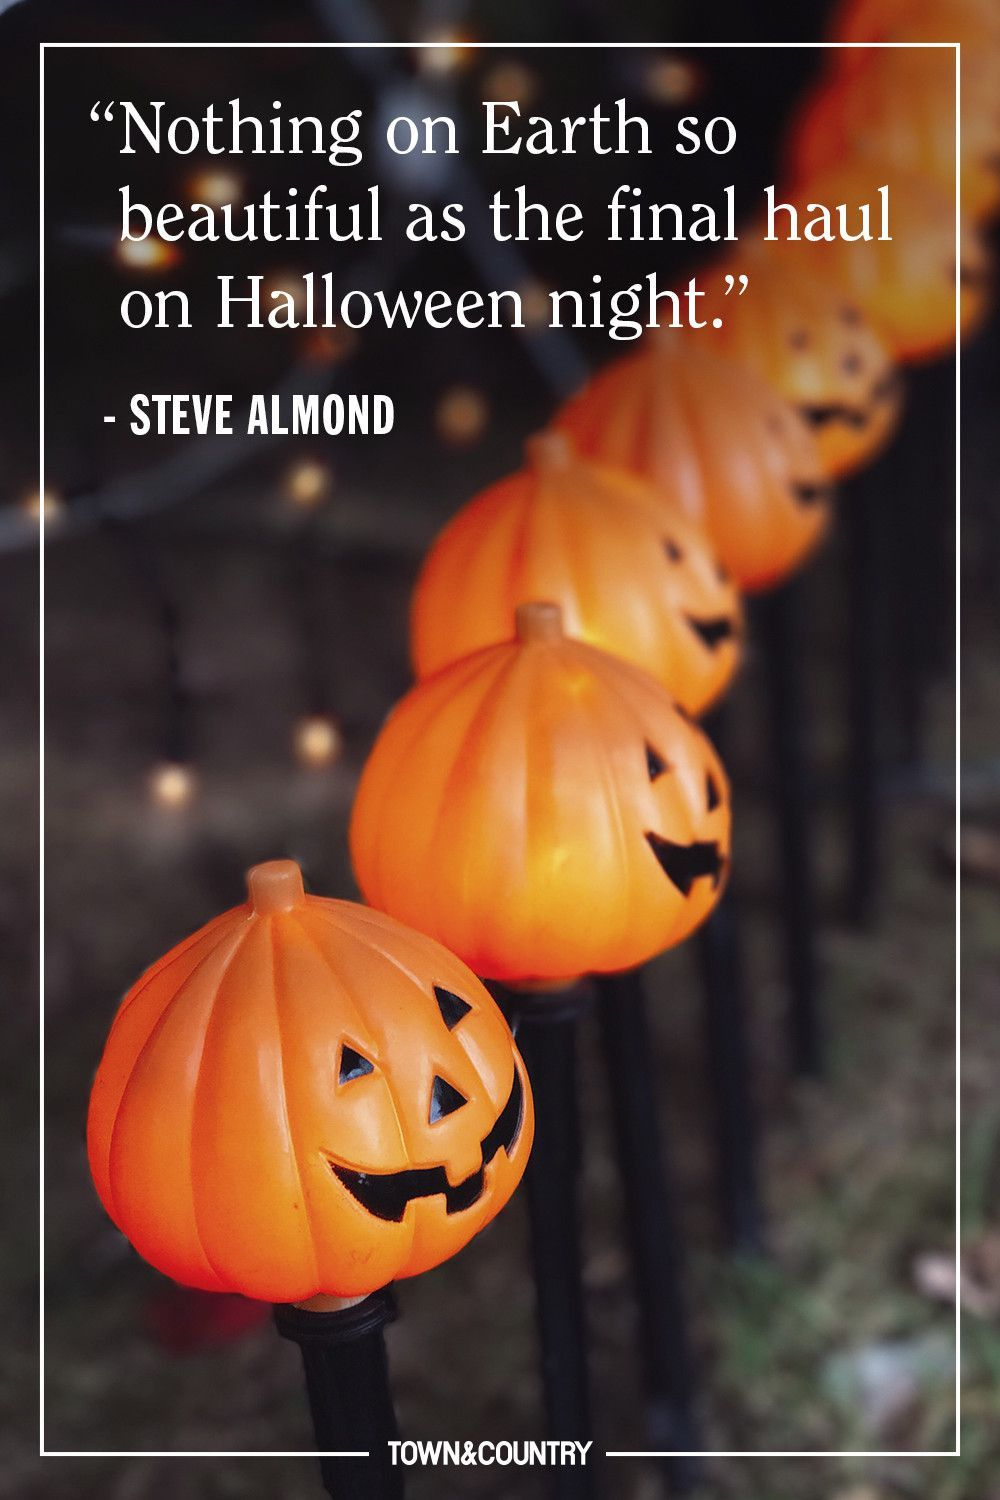 Eerie Quotes That'll Get You In the Halloween Spirit